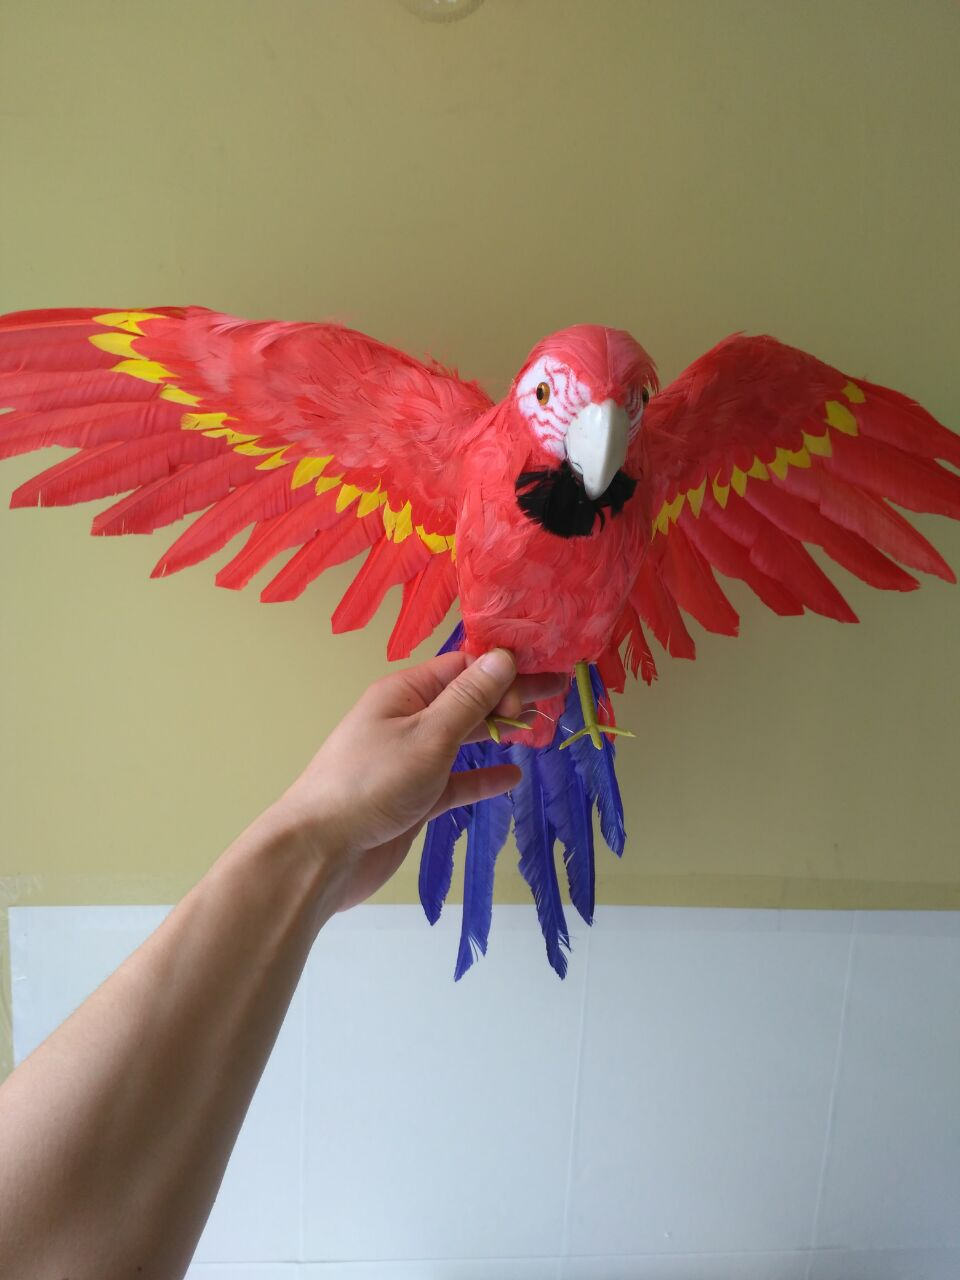 40x60cm spreading wings parrot model,foam&feathers colorful parrot handicraft,party prop,home garden decoration,gift d121040x60cm spreading wings parrot model,foam&feathers colorful parrot handicraft,party prop,home garden decoration,gift d1210